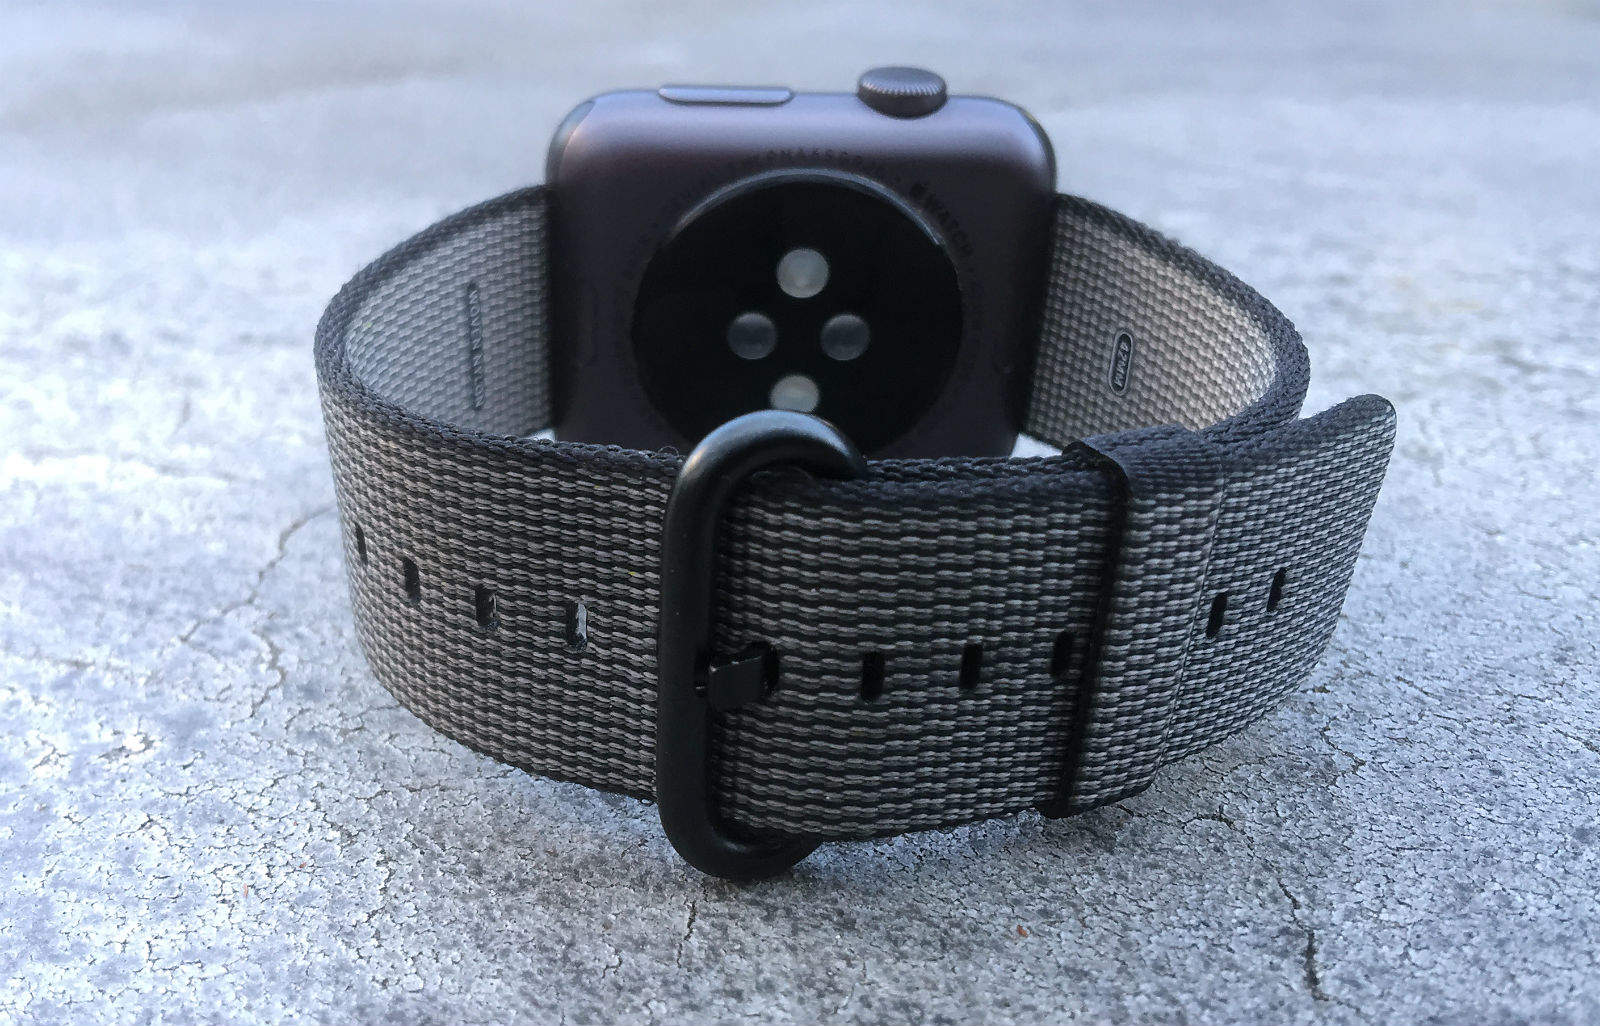 Review: Woven-nylon Apple Watch band might be worth $50